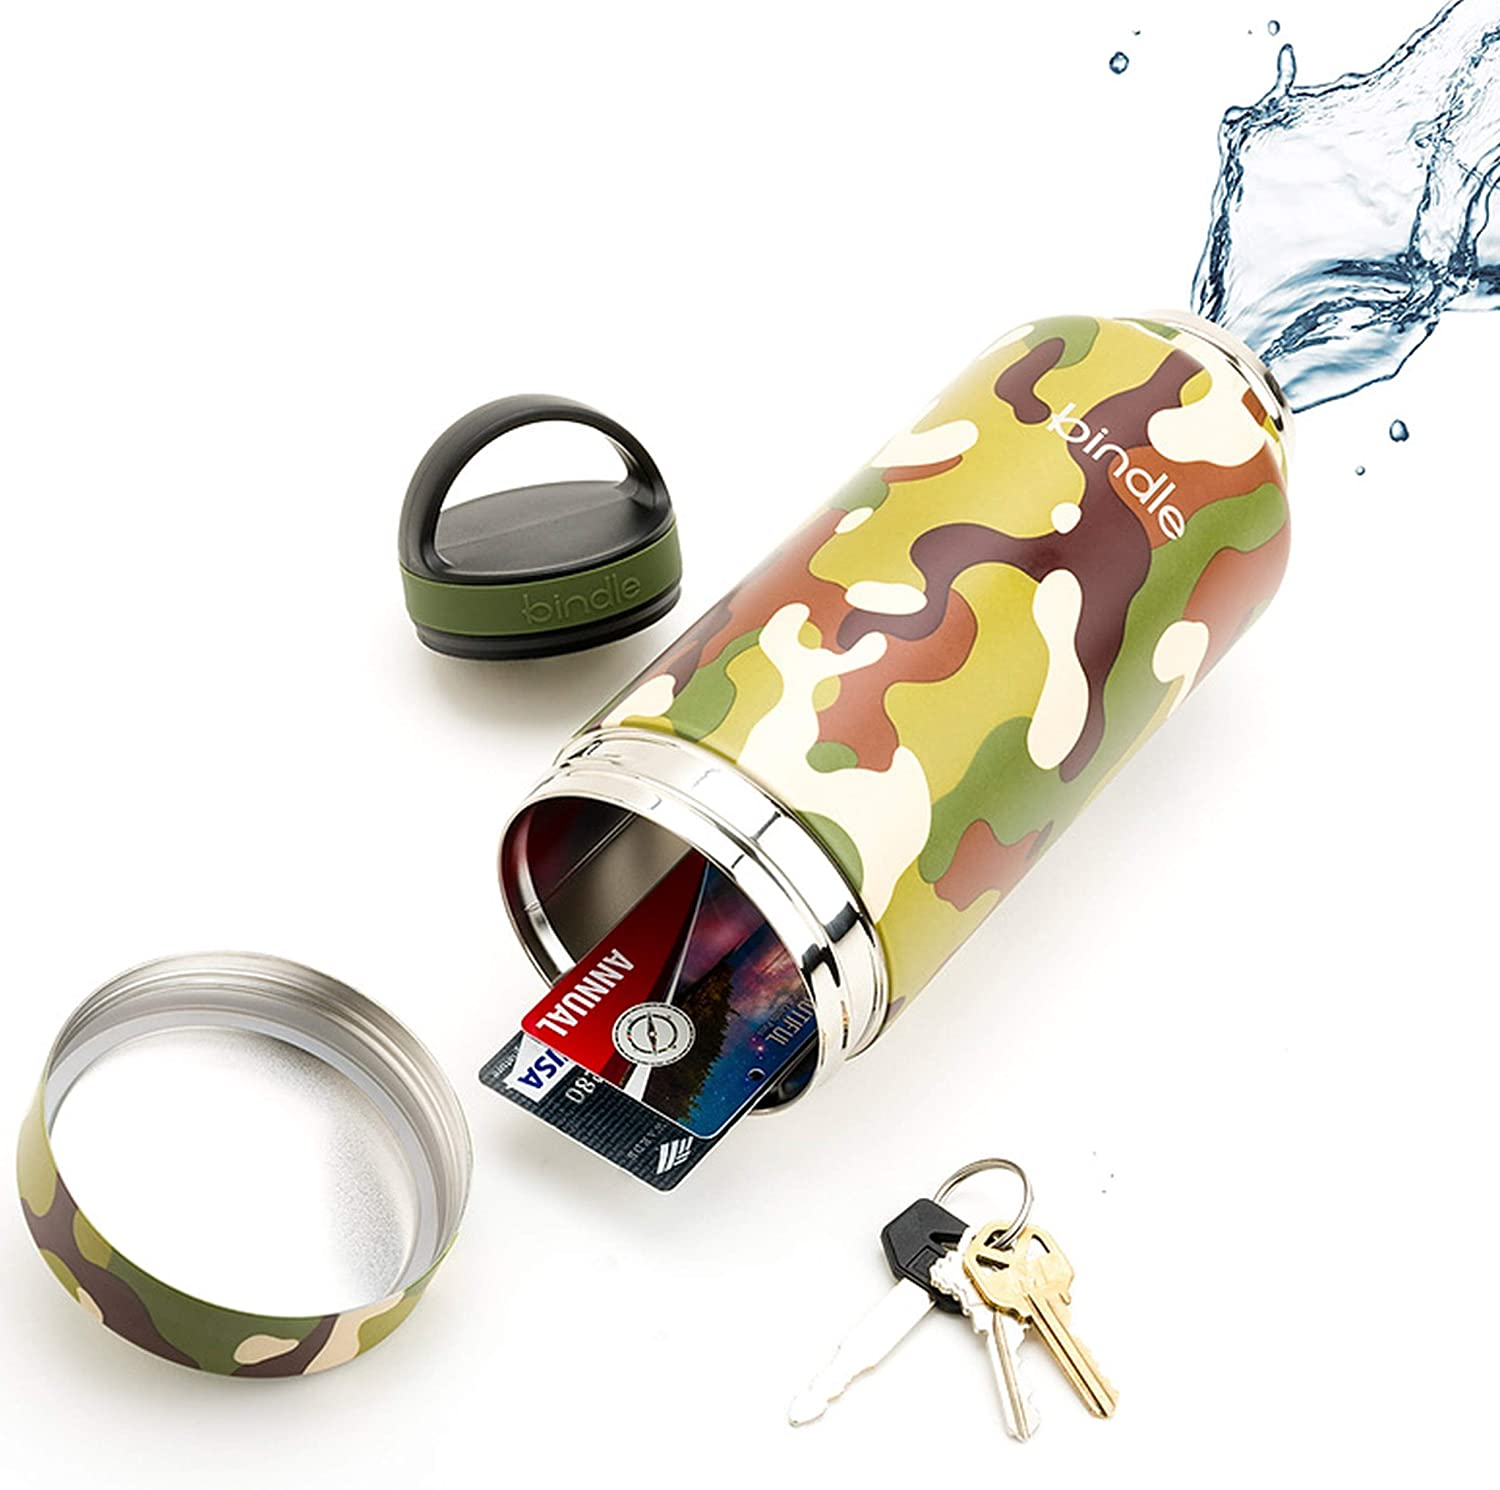 Bindle Bottle 24oz Green Camo   Stainless Steel Double Walled & Vacuum Insulated Water Bottle with Storage/Stash Compartment   Drinks Stay Cold for 24 Hours, Hot for 12